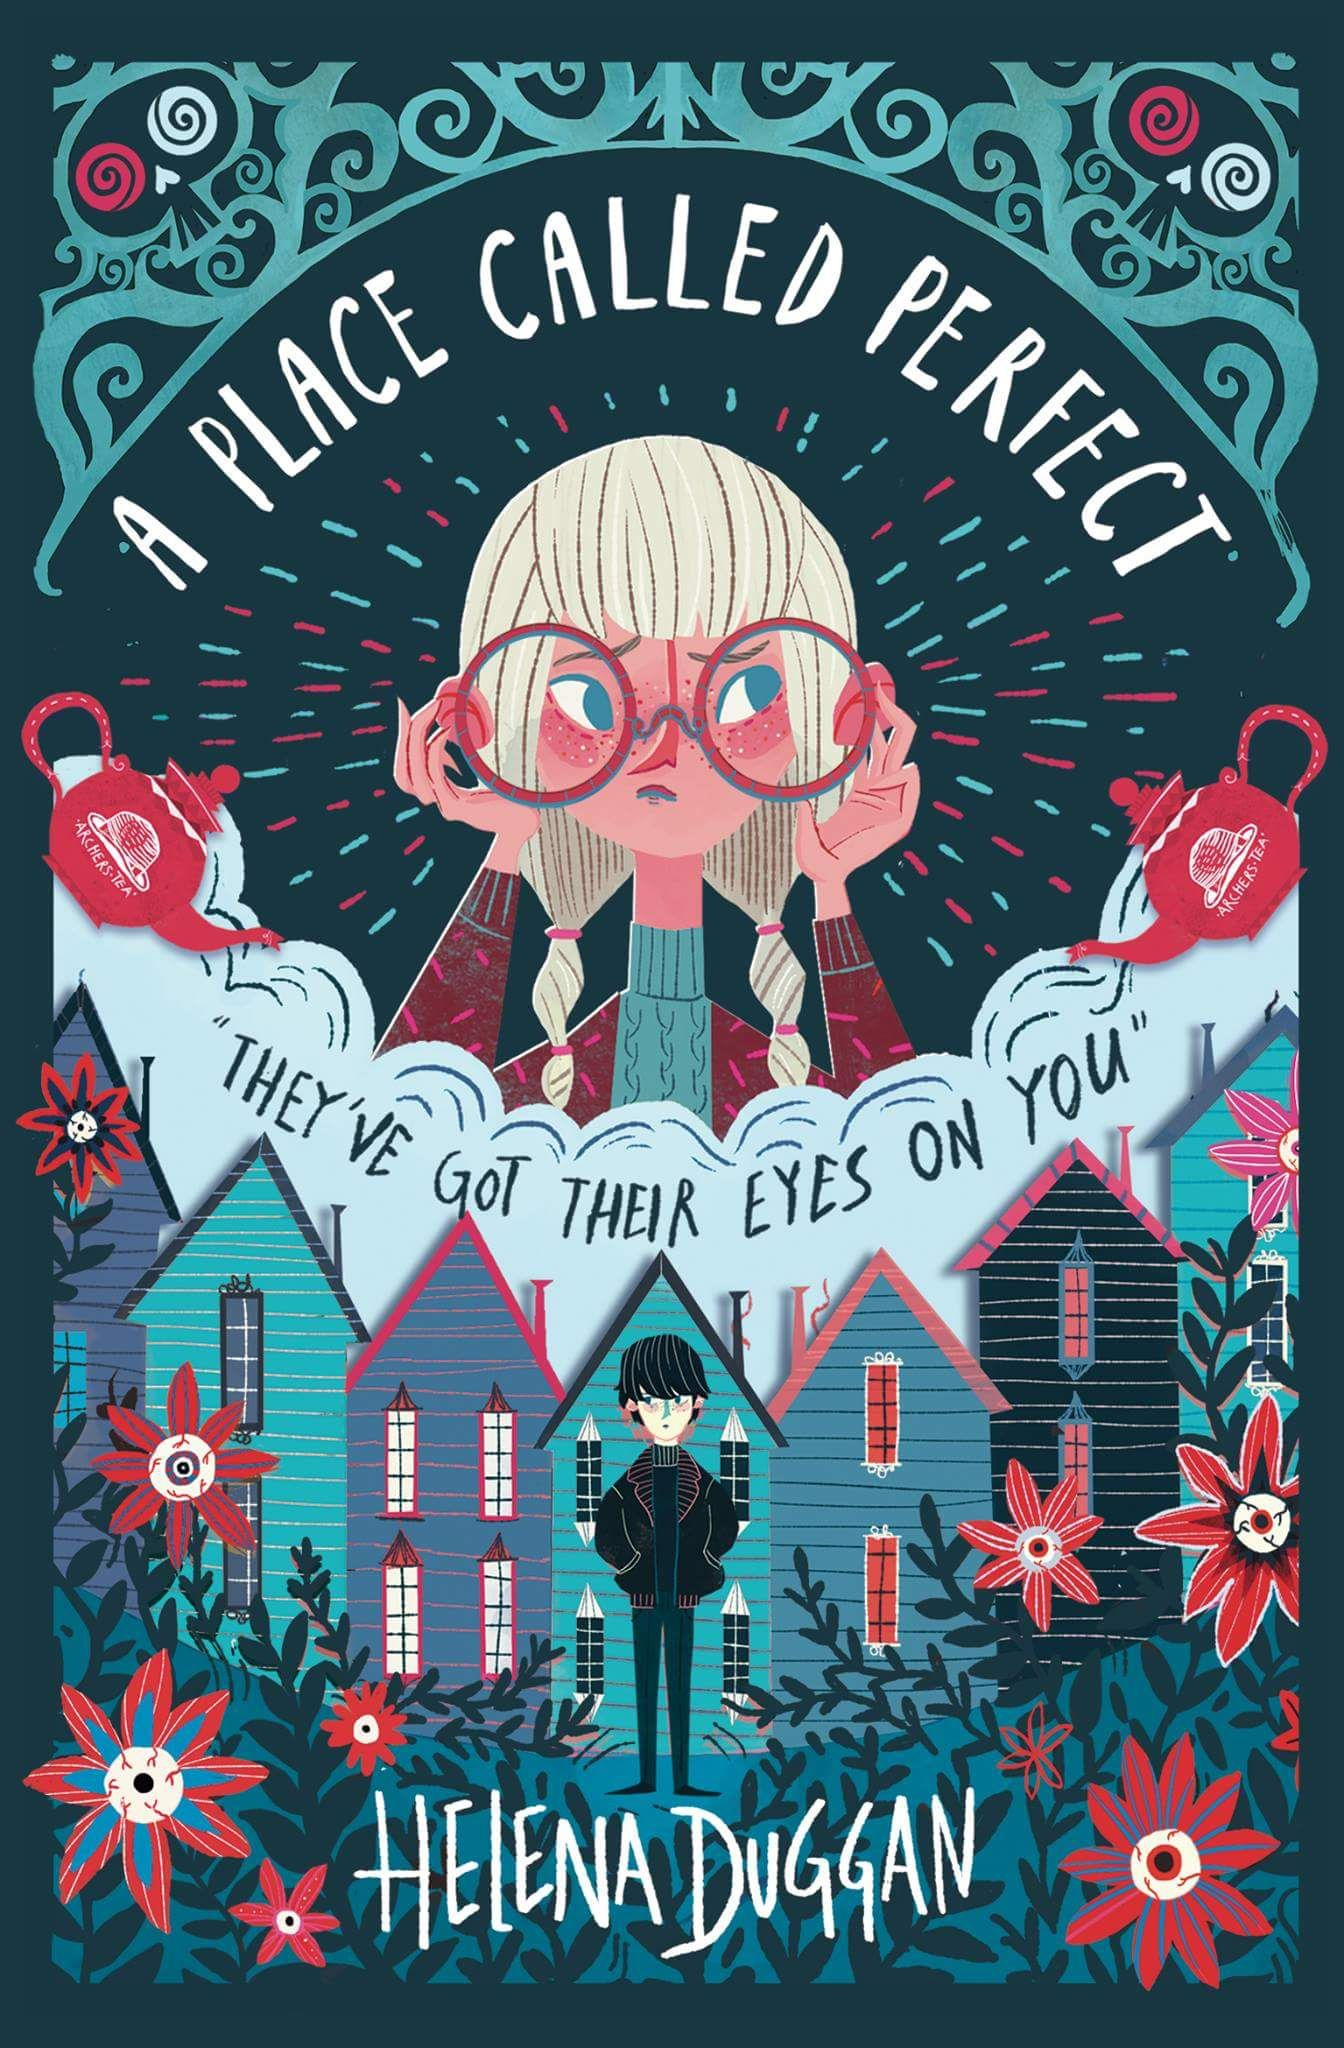 Illustrated Book Cover Ideas : Cover love a place called perfect helena duggan book